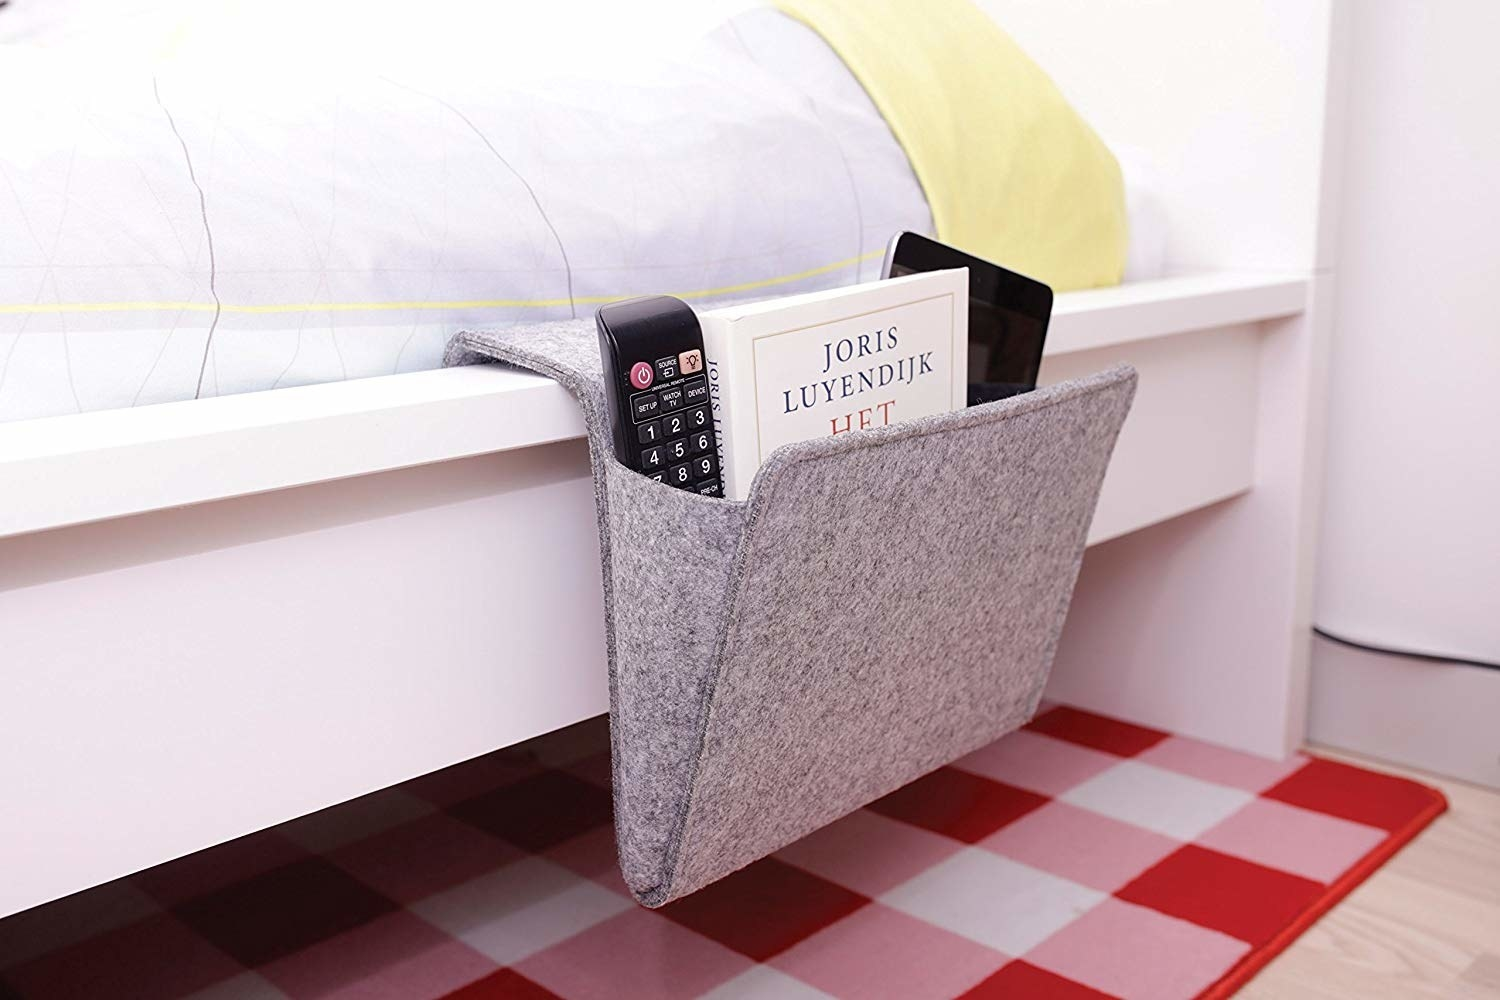 Bedside caddy attached to the side of the bed holding remote, book, and tablet